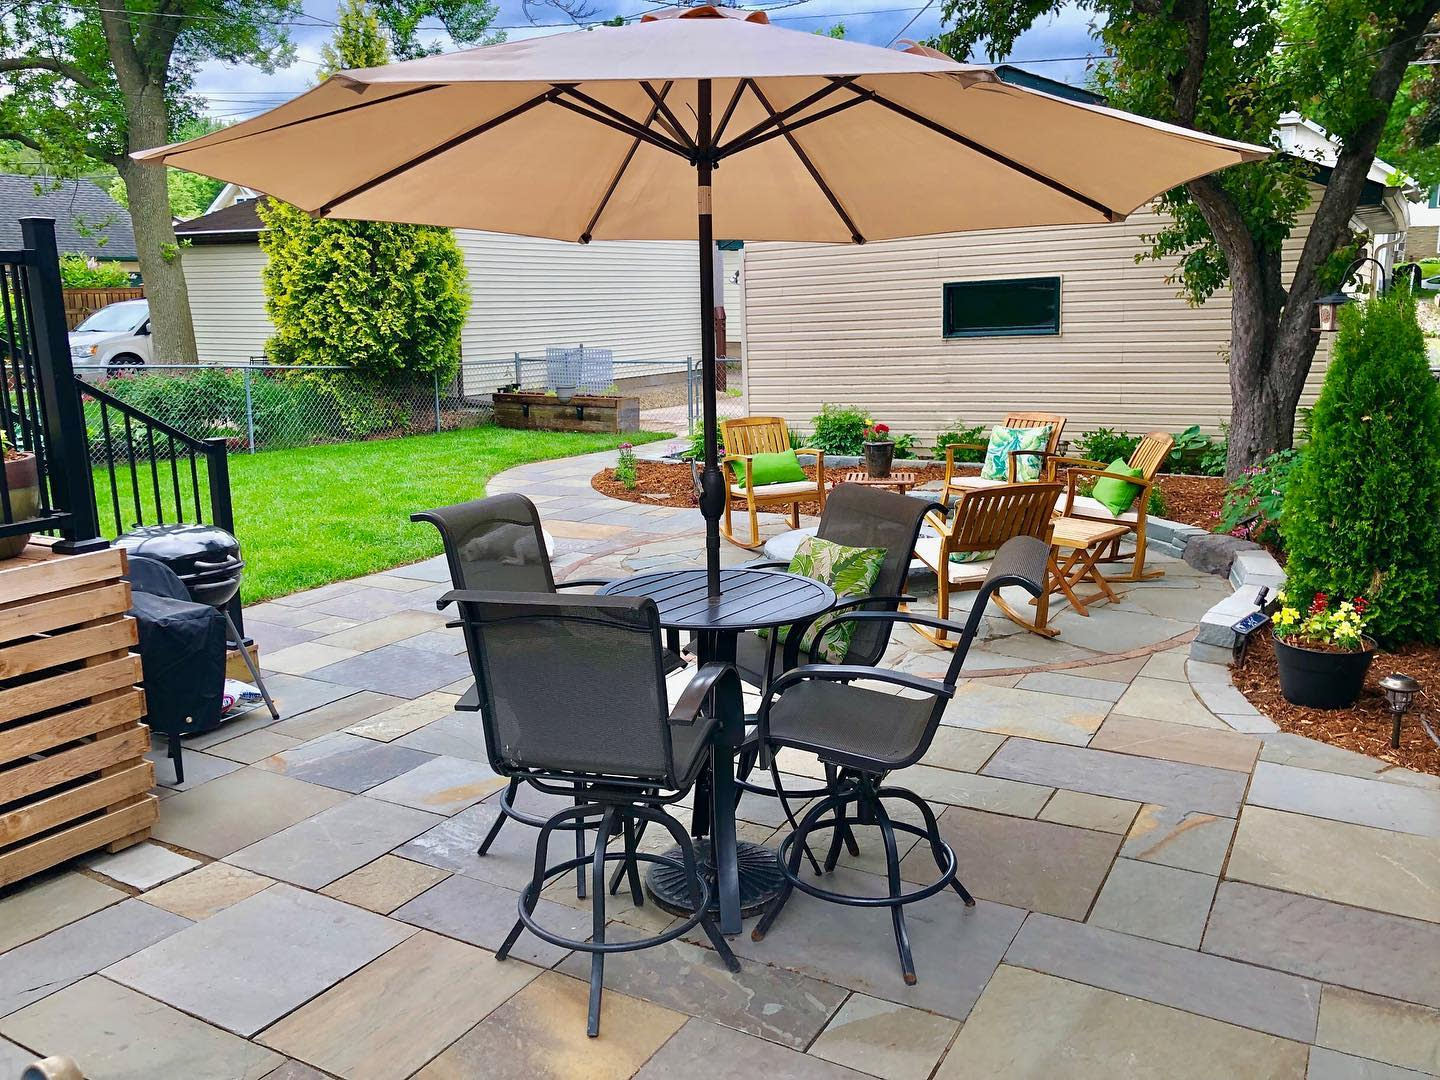 Patio Backyard Landscaping Ideas on a Budget -stonearchlandscapes